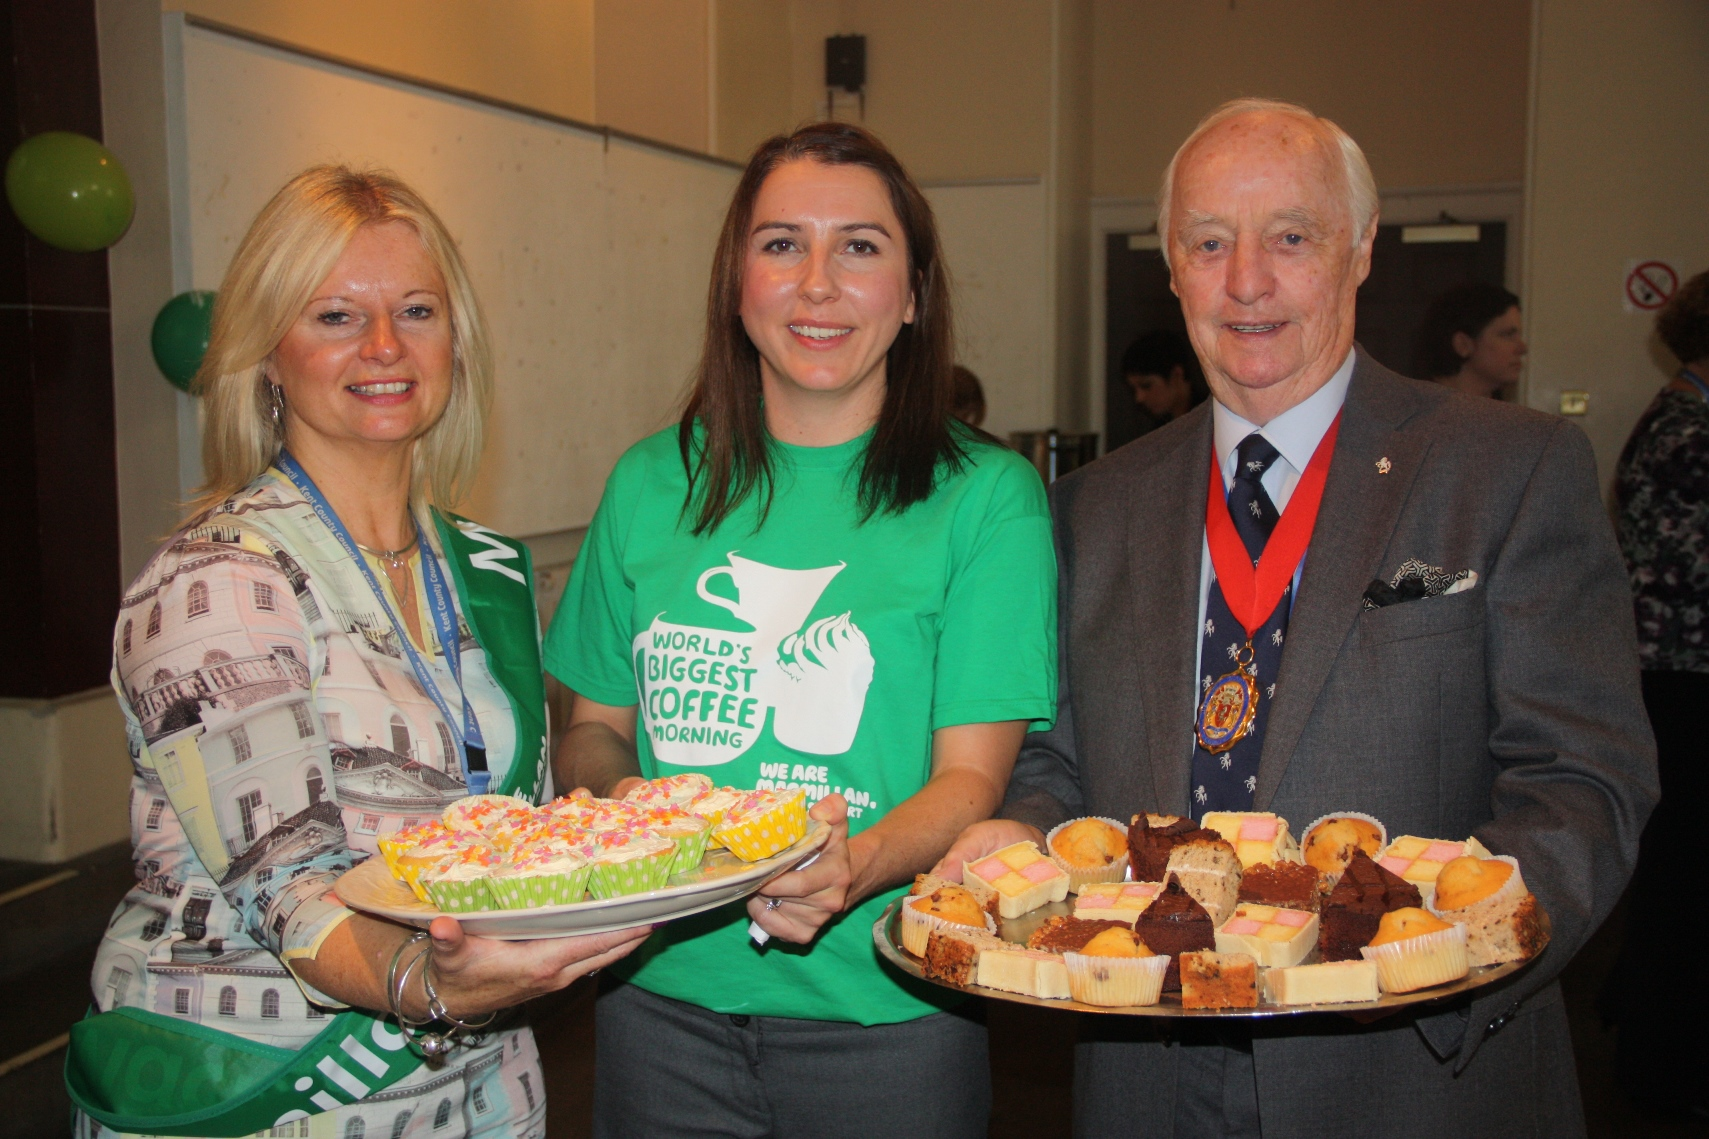 KCC takes part in world's biggest coffee morning